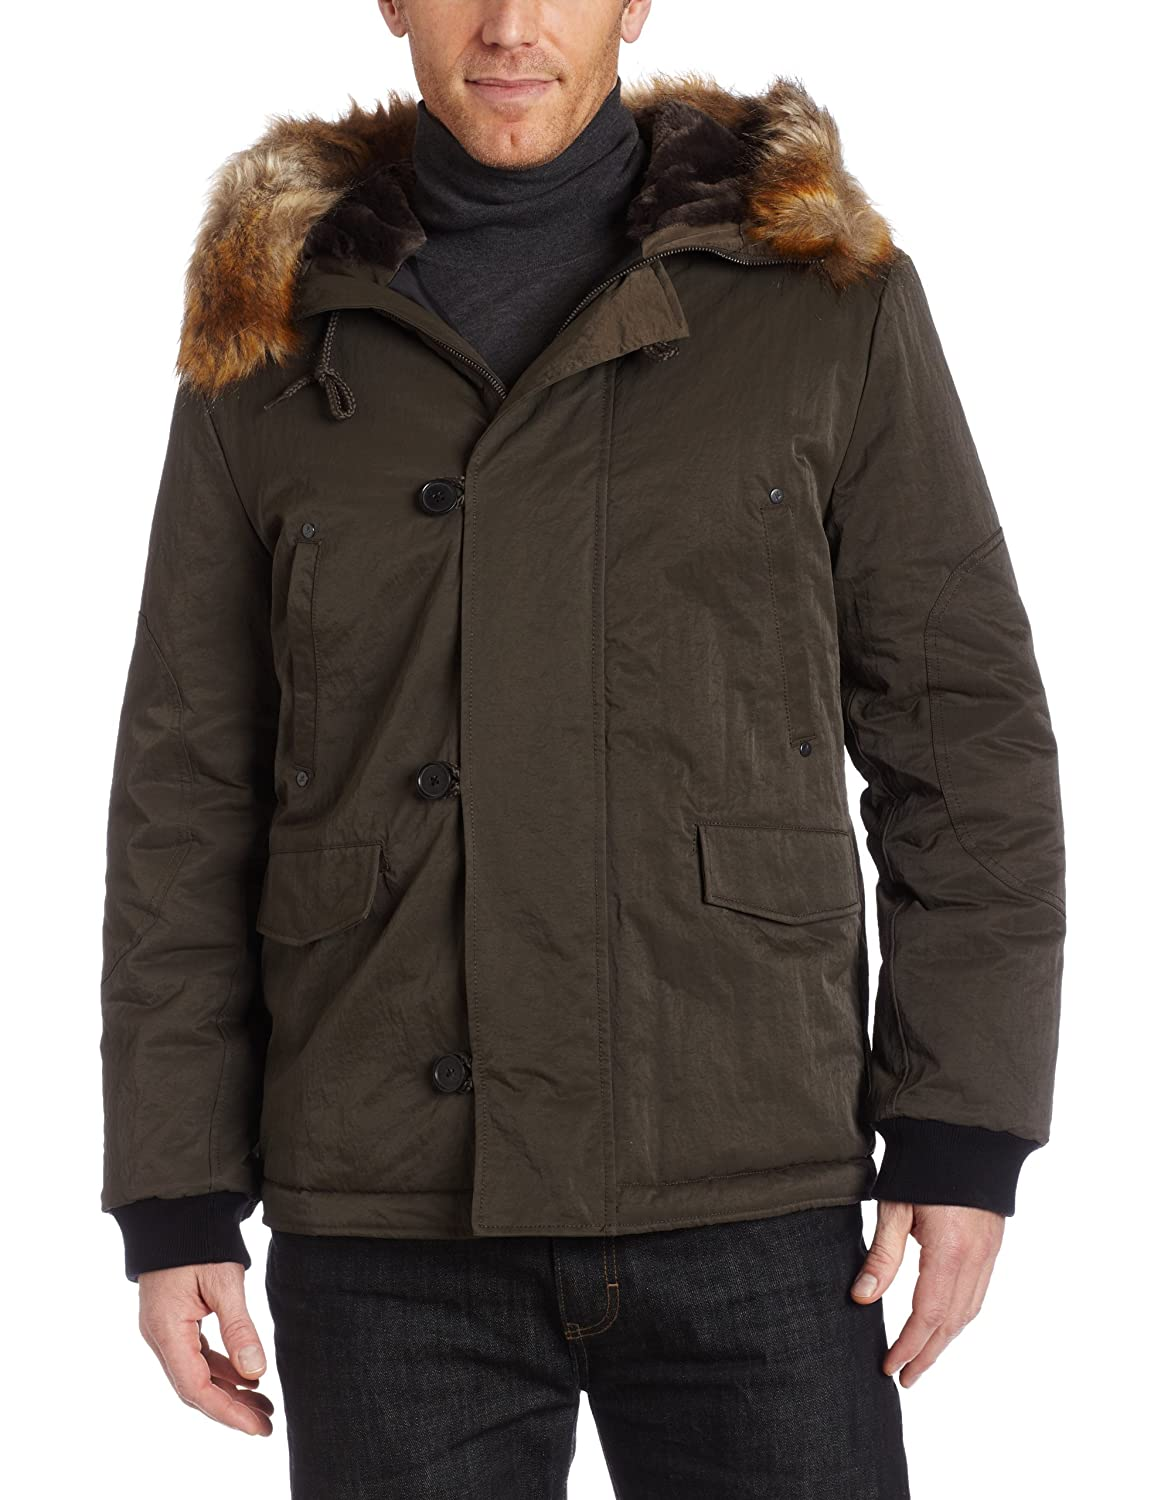 Kenneth Cole New York Mens Hooded Parka, Pinetree, X-Large